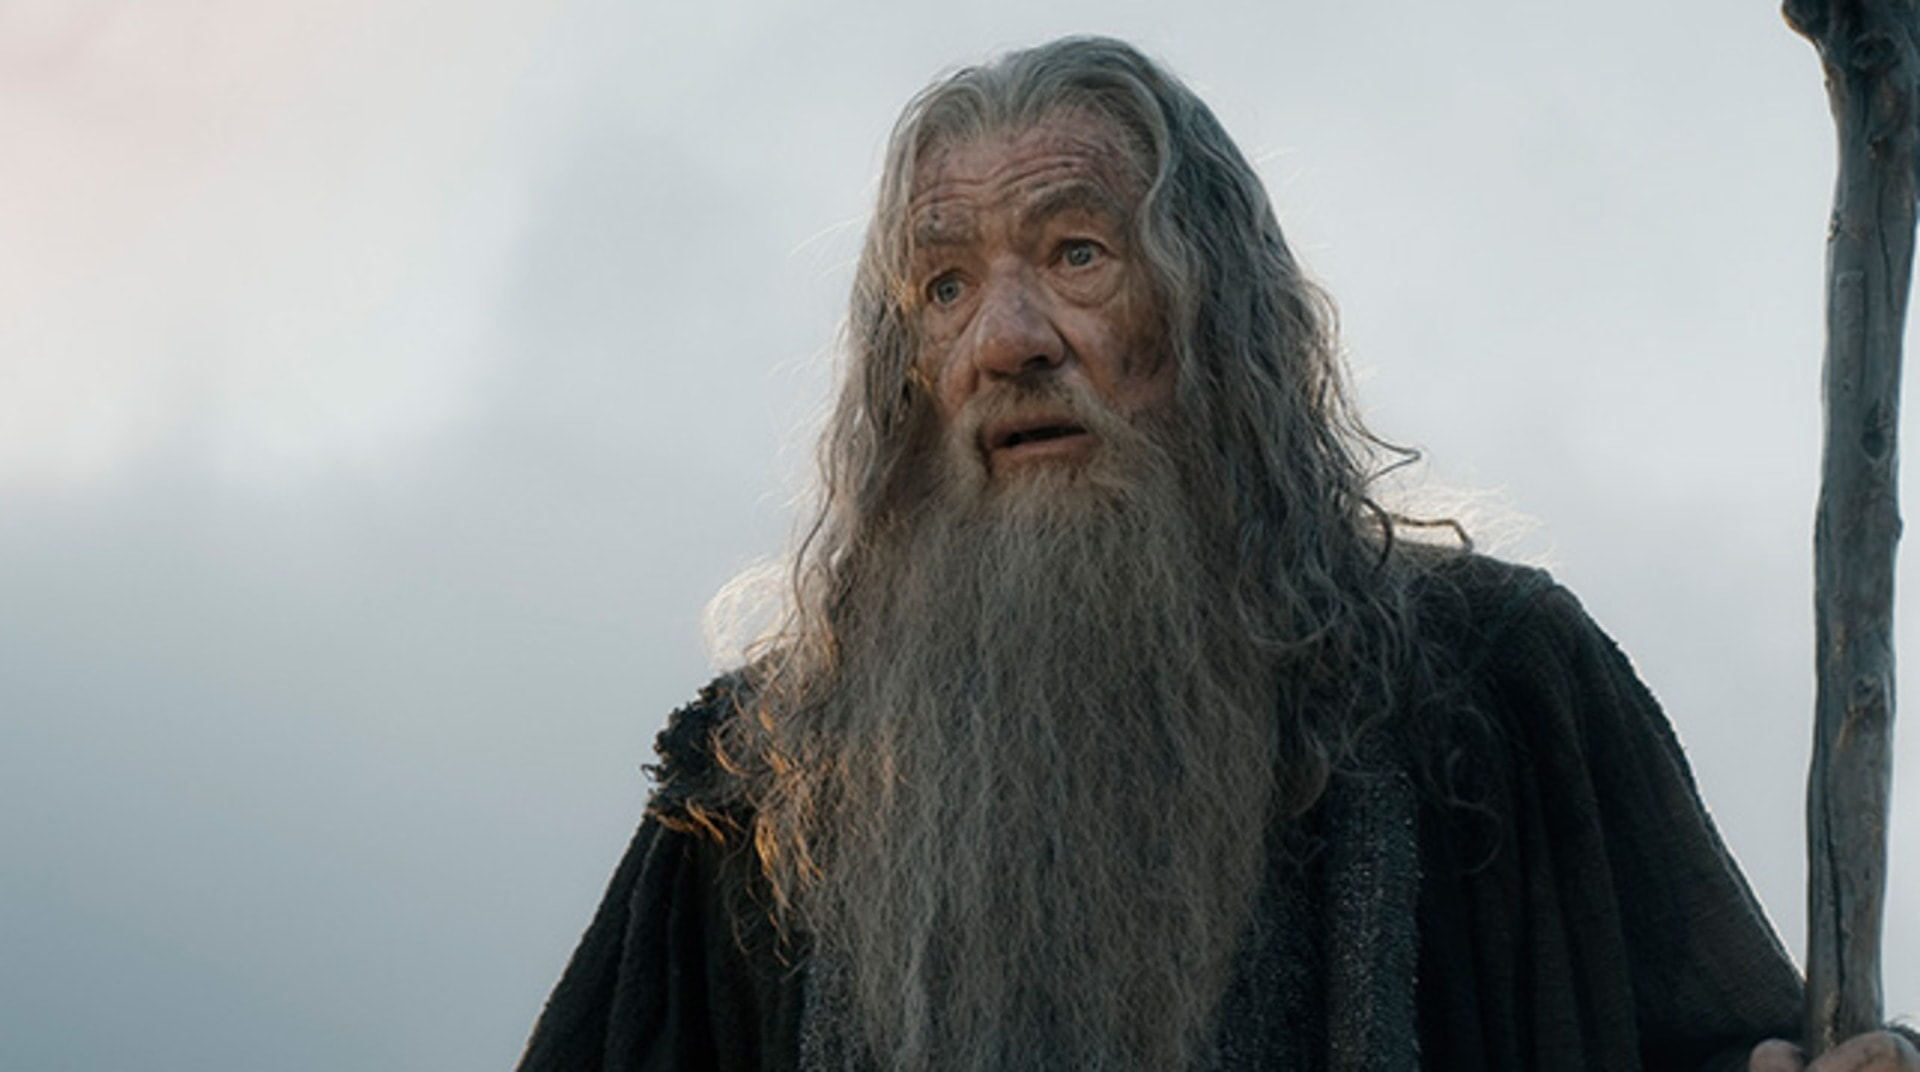 The Hobbit: The Battle of the Five Armies - Image 49